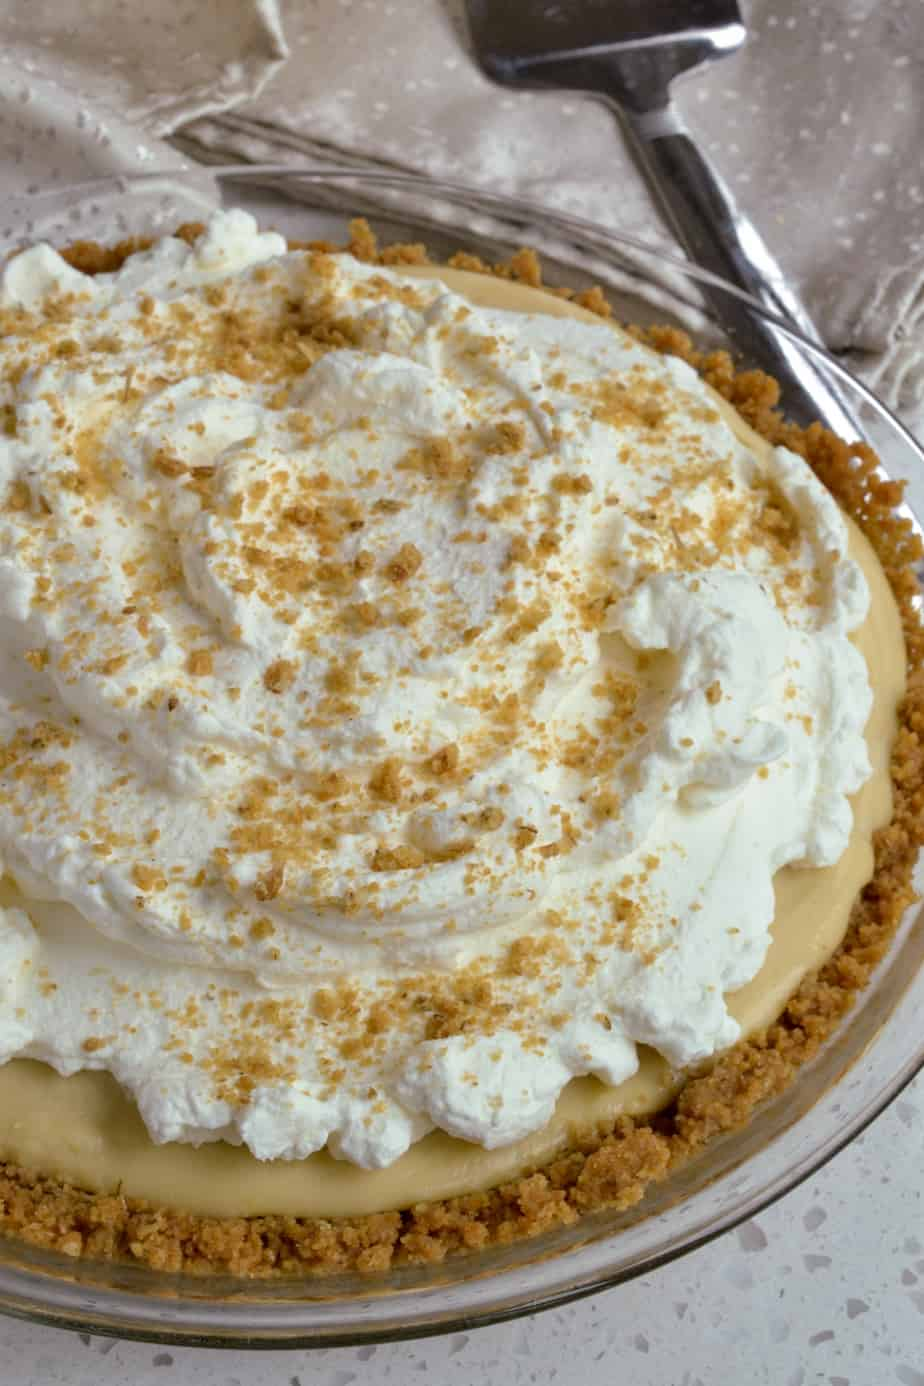 A creamy butterscotch pie topped with whipped cream and crushed breakfast biscuits